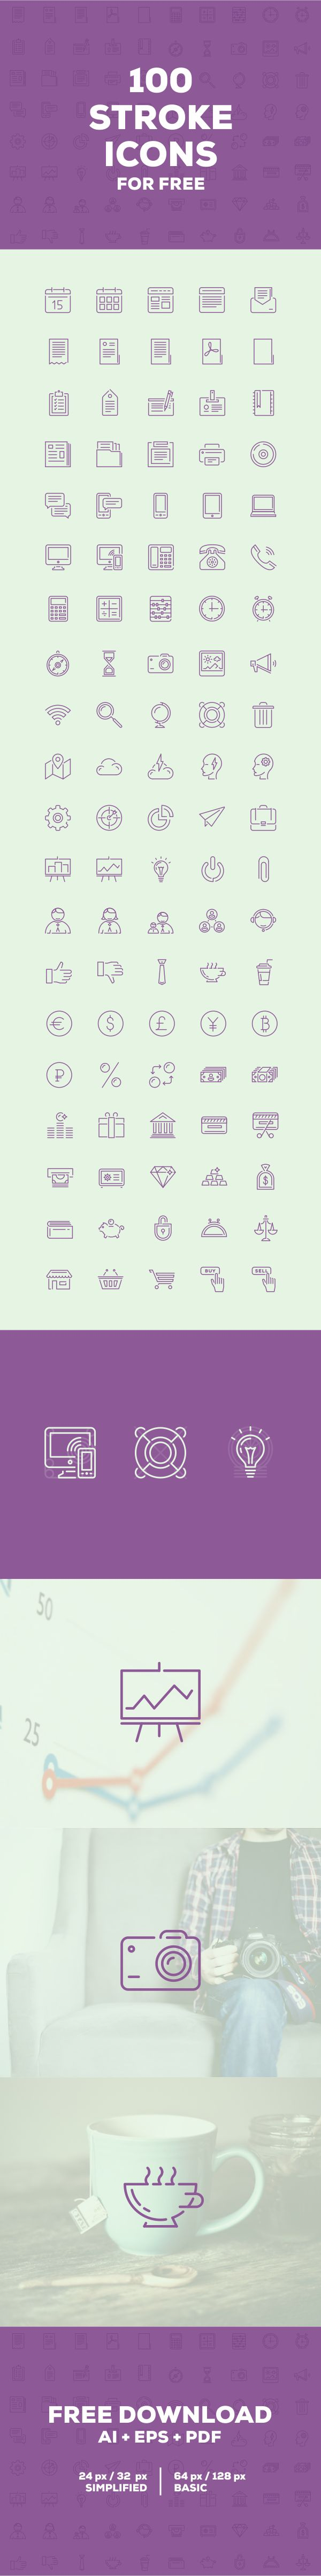 100 free icons on Behance